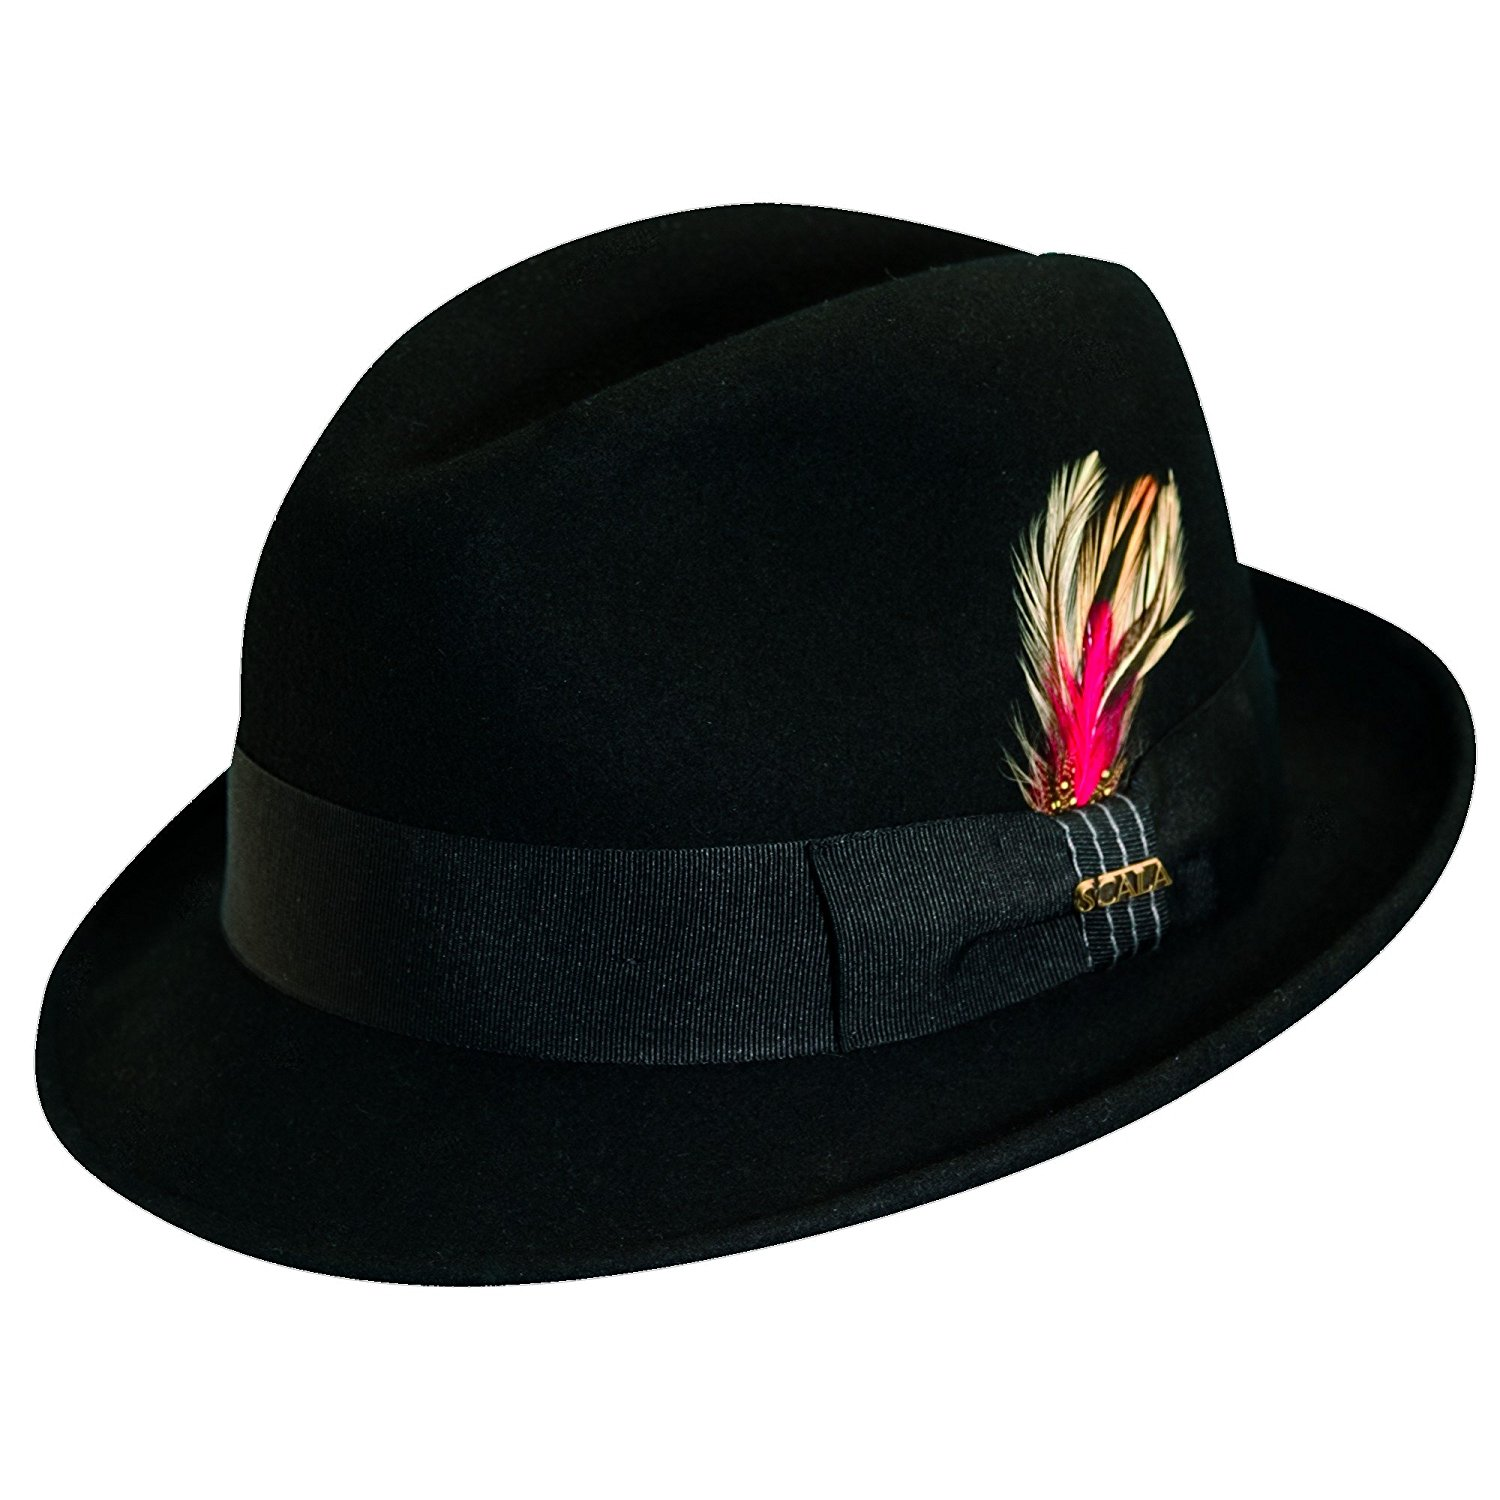 d6c69c054 Cheap Crushable Wool Fedora, find Crushable Wool Fedora deals on ...